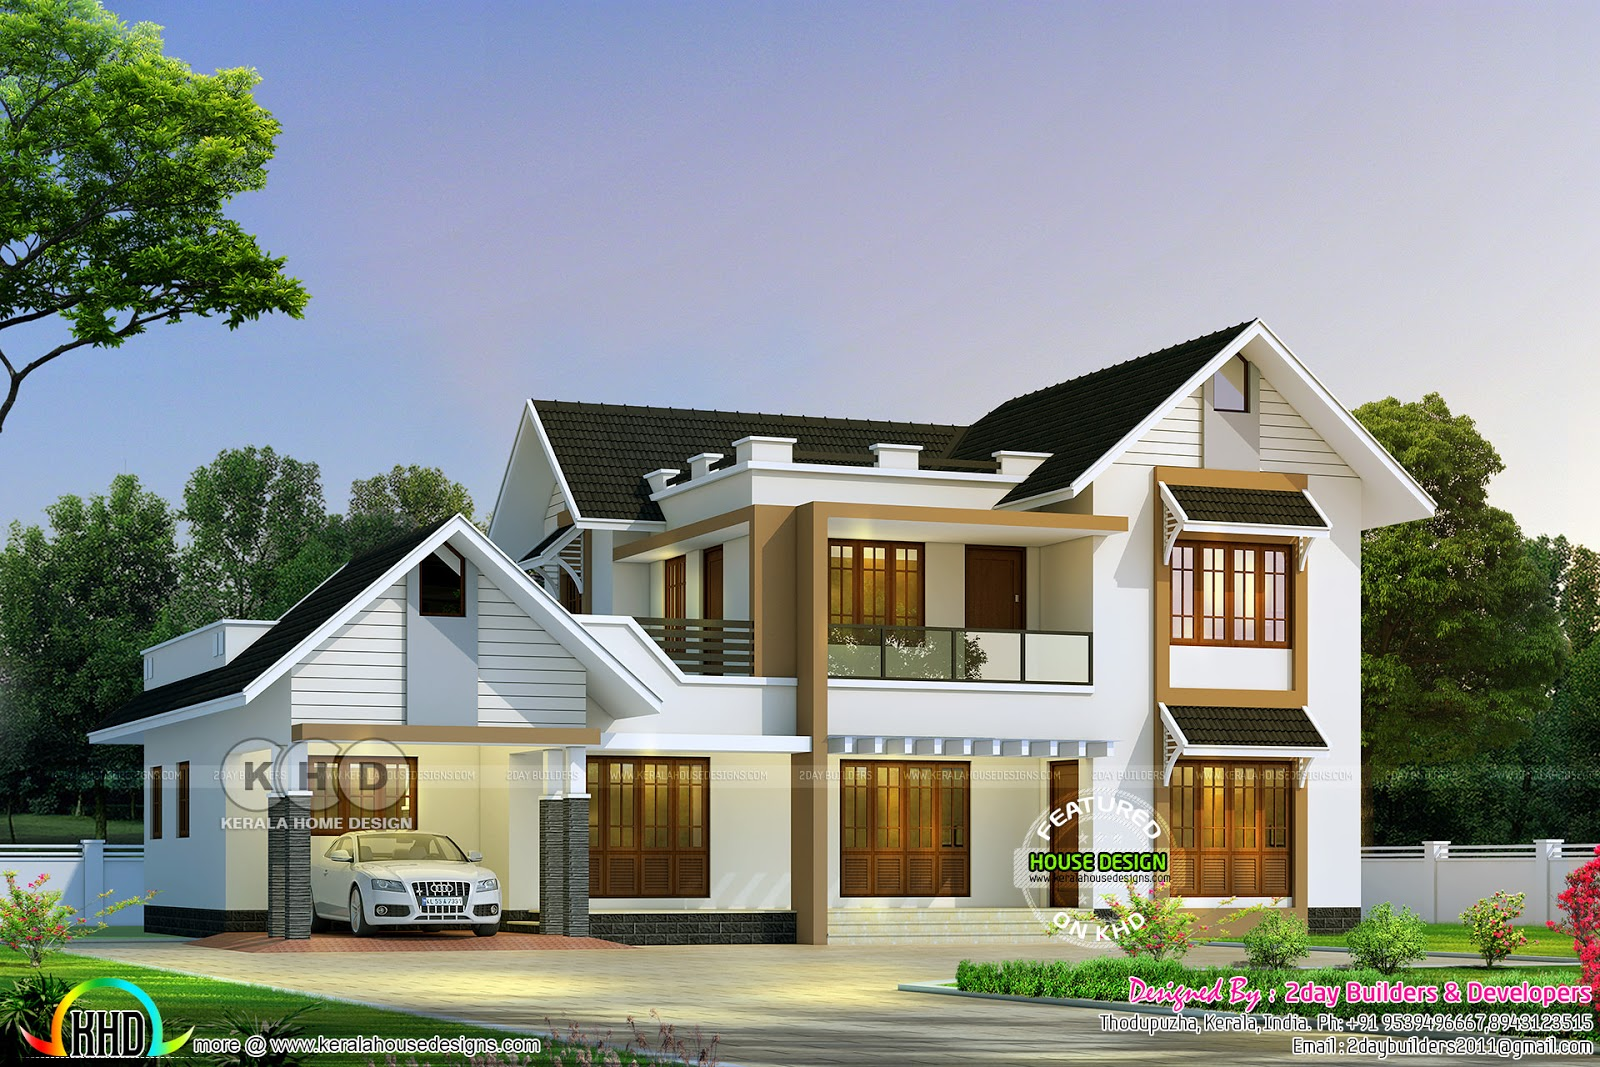 2017 kerala home design and floor plans for Home designs in kerala